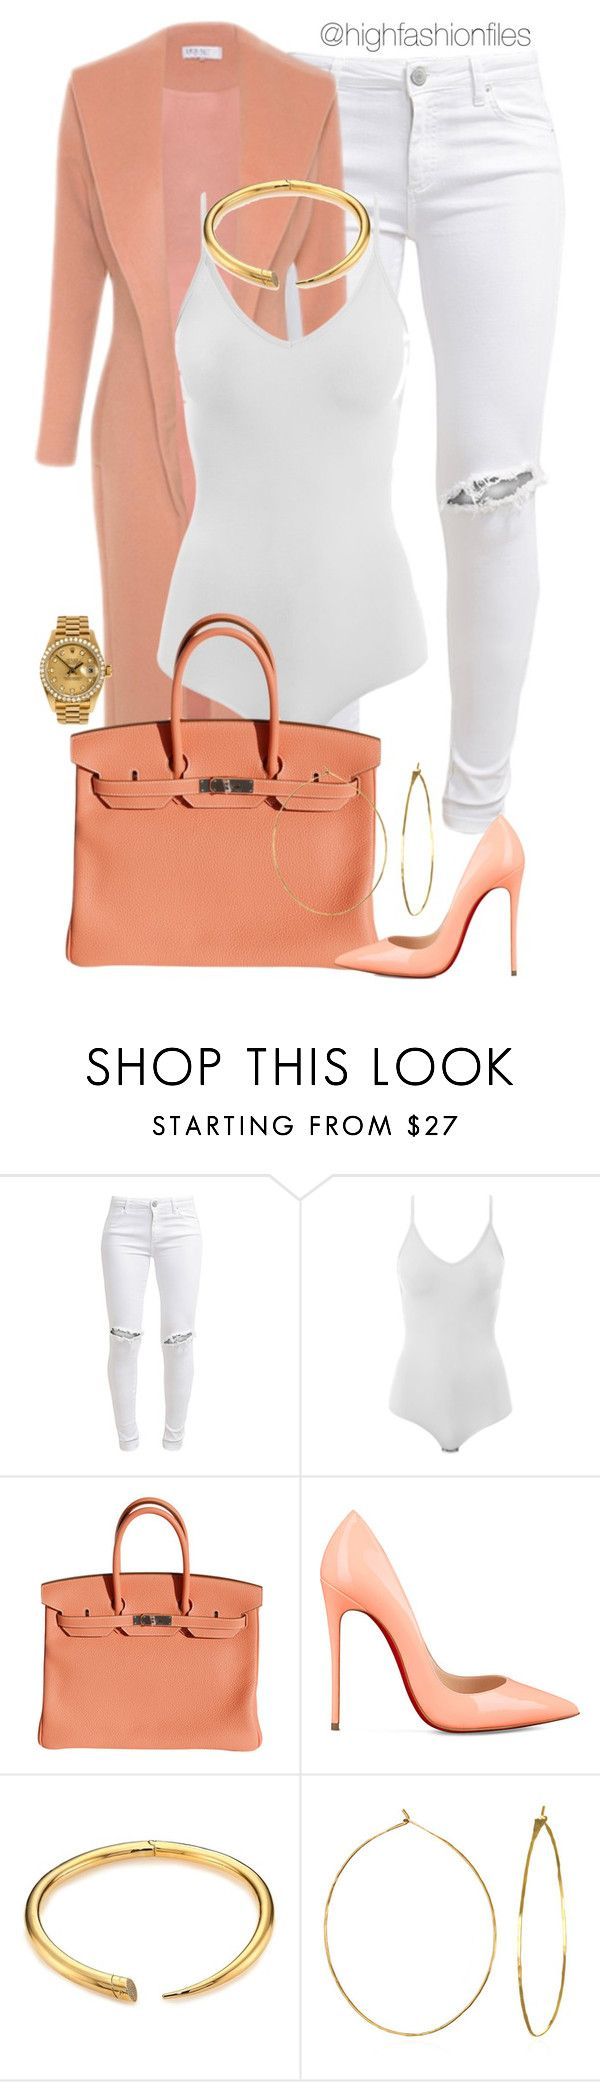 """""""Georgia Peach"""" by highfashionfiles ❤ liked on Polyvore featuring FiveUnits, Intimissimi, Hermès, Christian Louboutin, Michael Kors, Rolex and Phyllis + Rosie"""